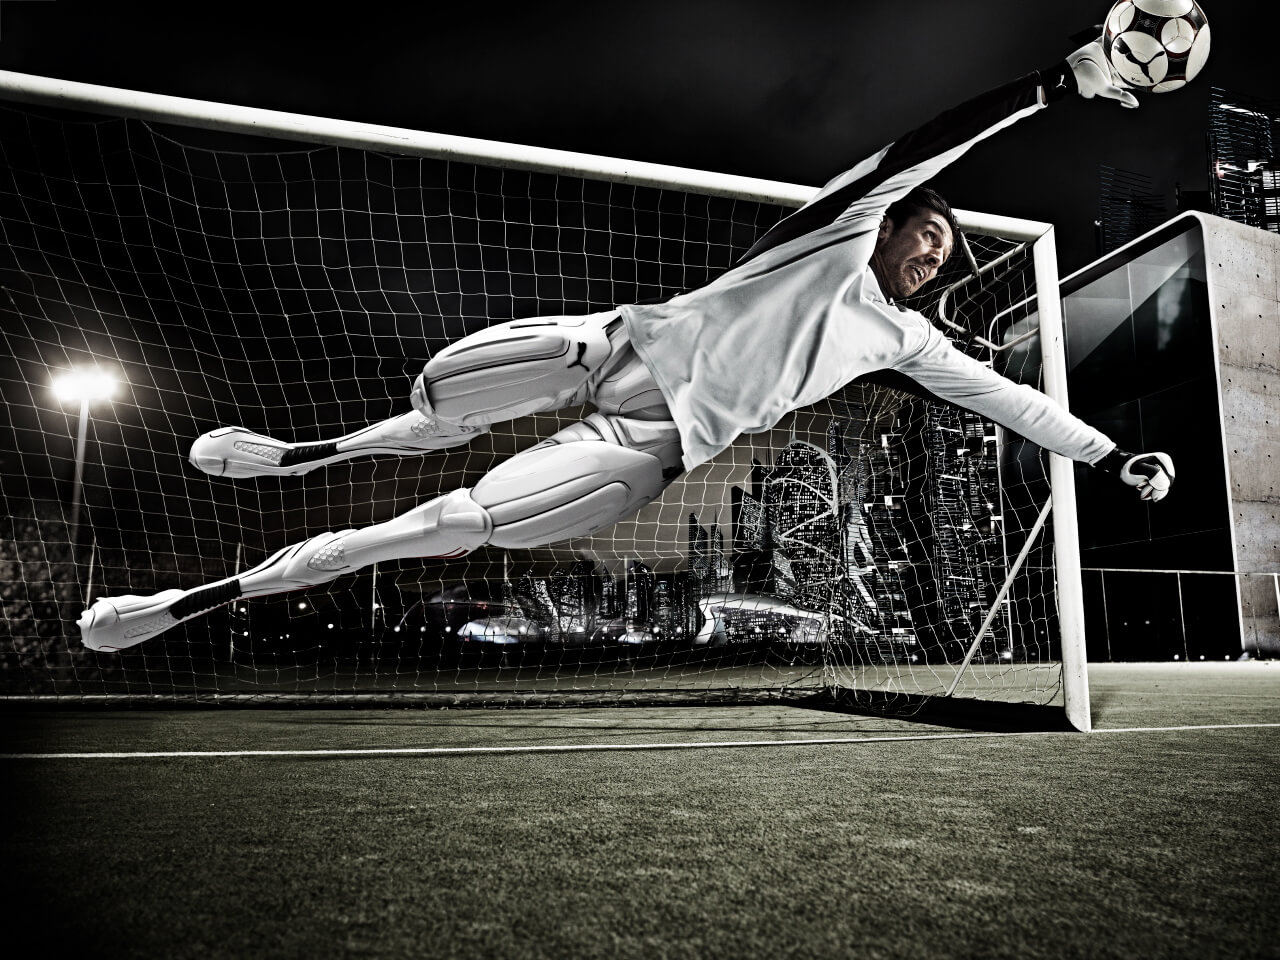 Futuristic Image Of Football Goalkeeper Buffon